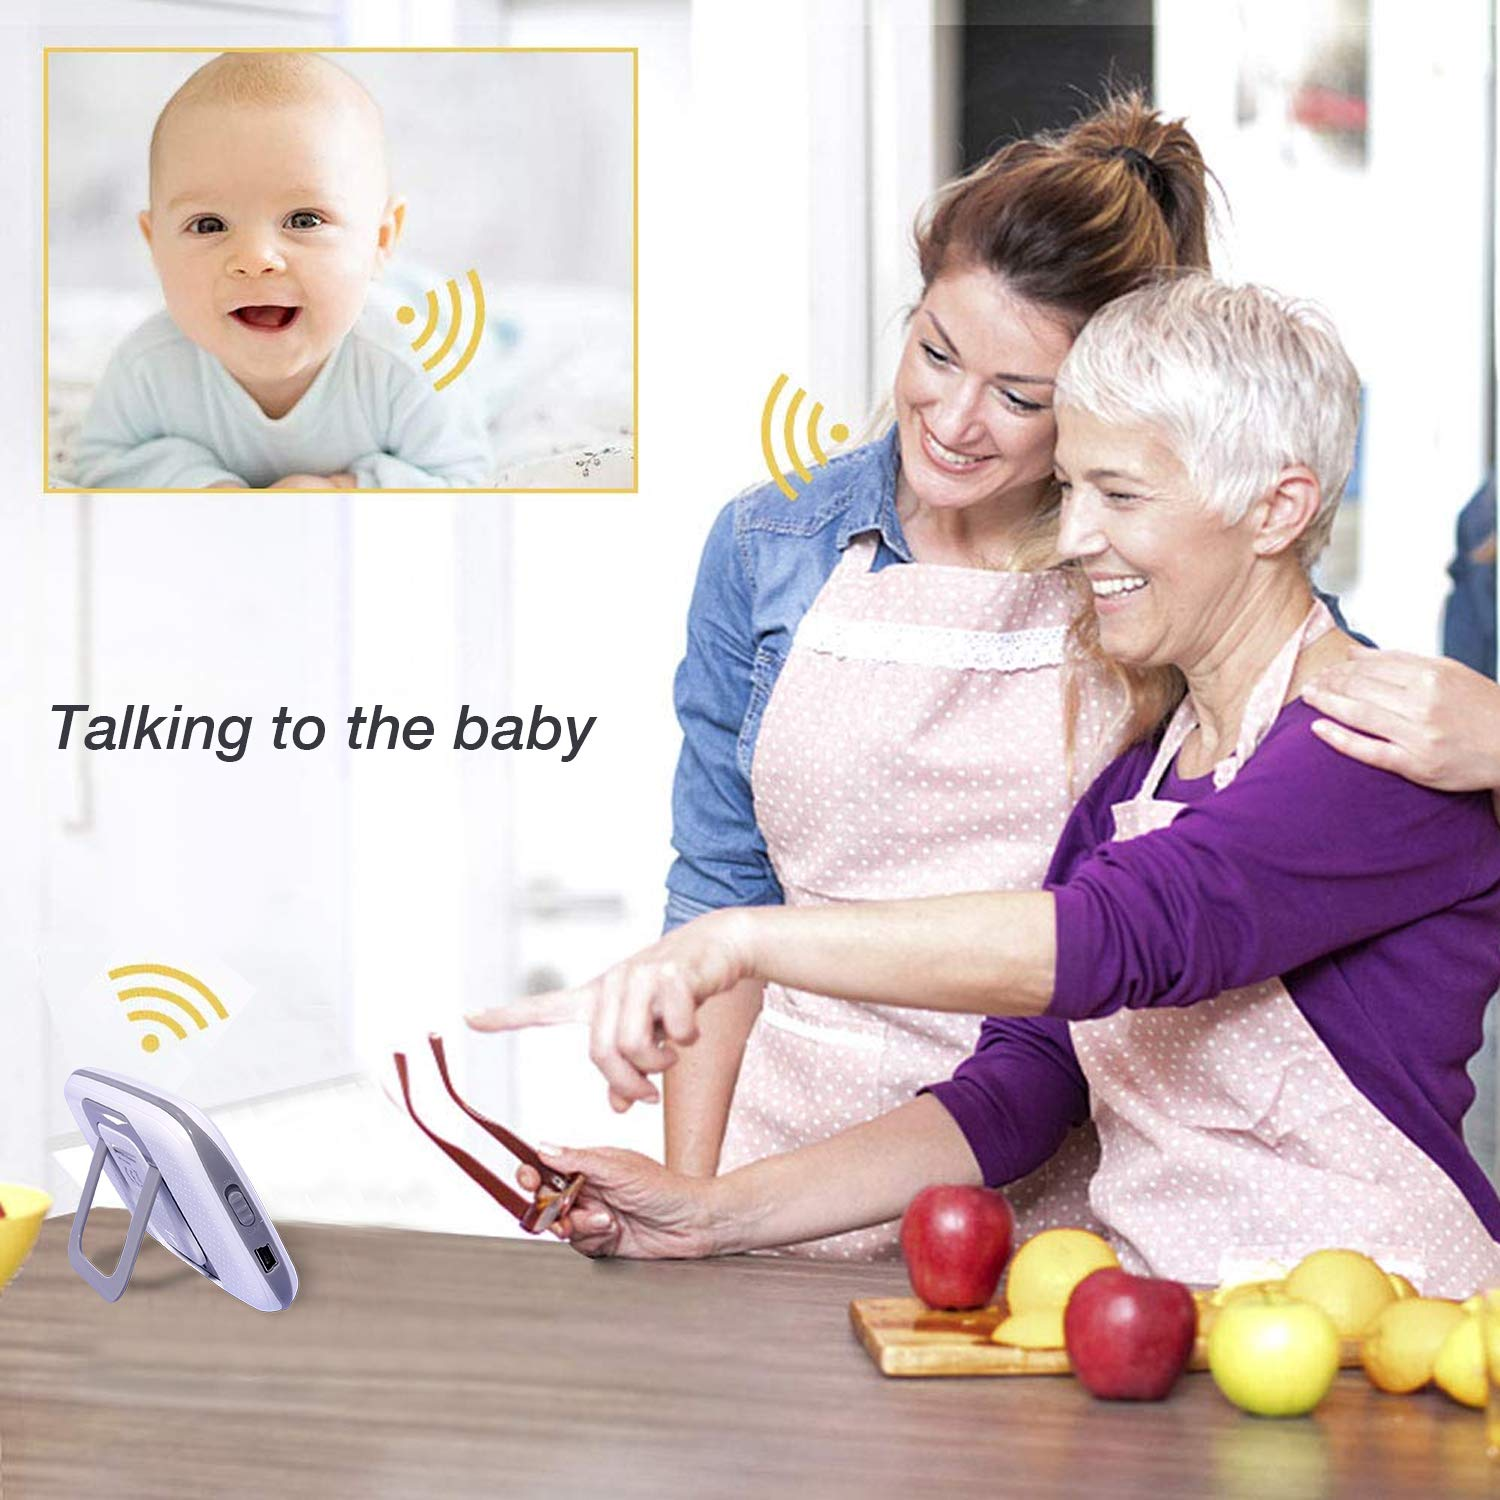 RCB Babyphone mit Kamera Video Baby Monitor Digitalkamera Wireless Monitor Baby Wiegenlied LCD Zwei-Wege-Gespr/äch VB601